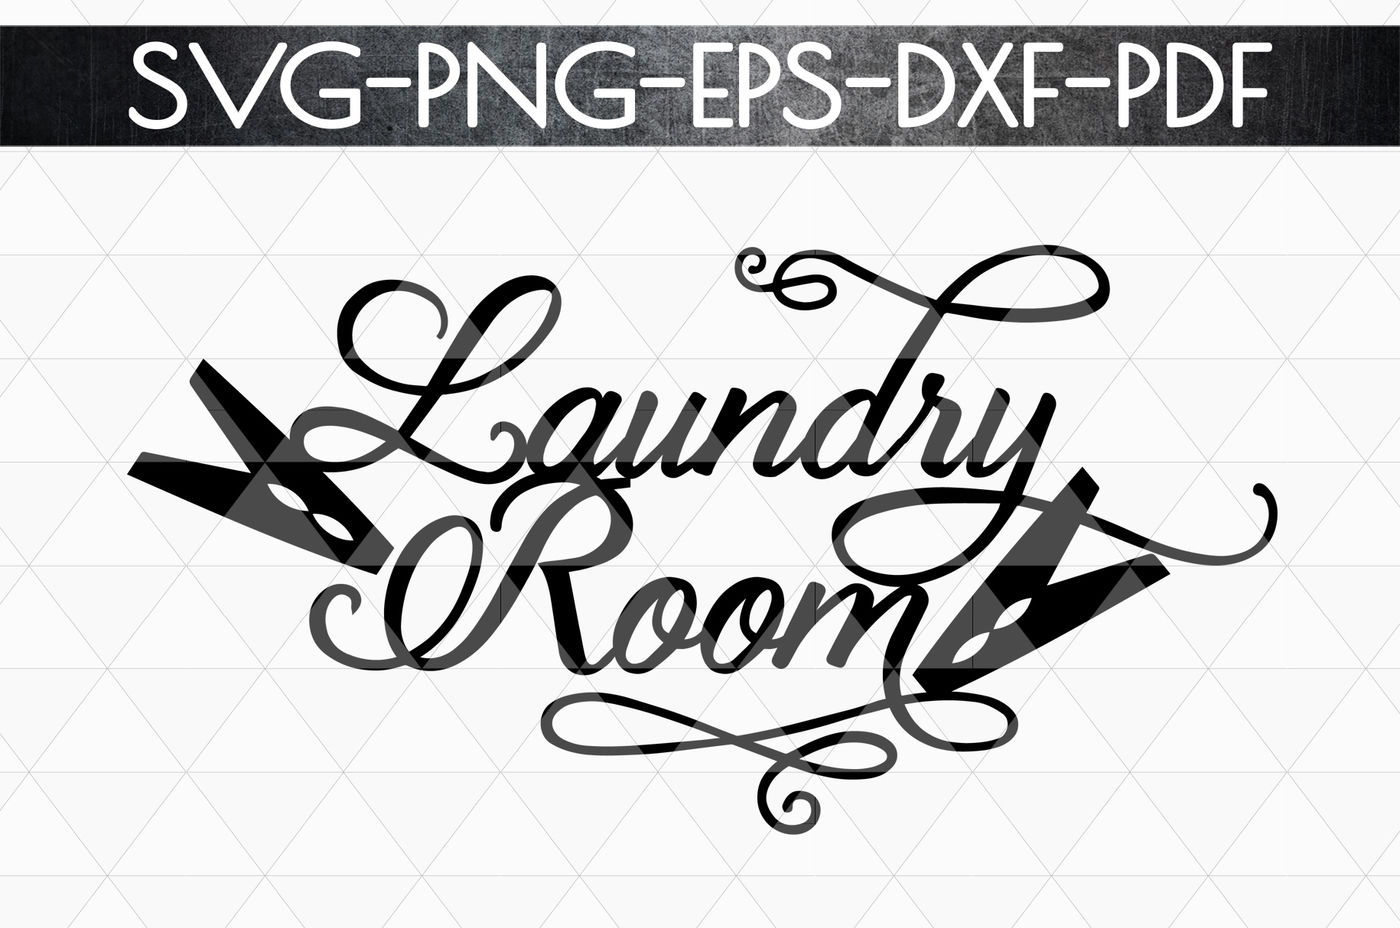 Download Laundry Room Sign Papercut Template, Home Decor SVG, DXF ...